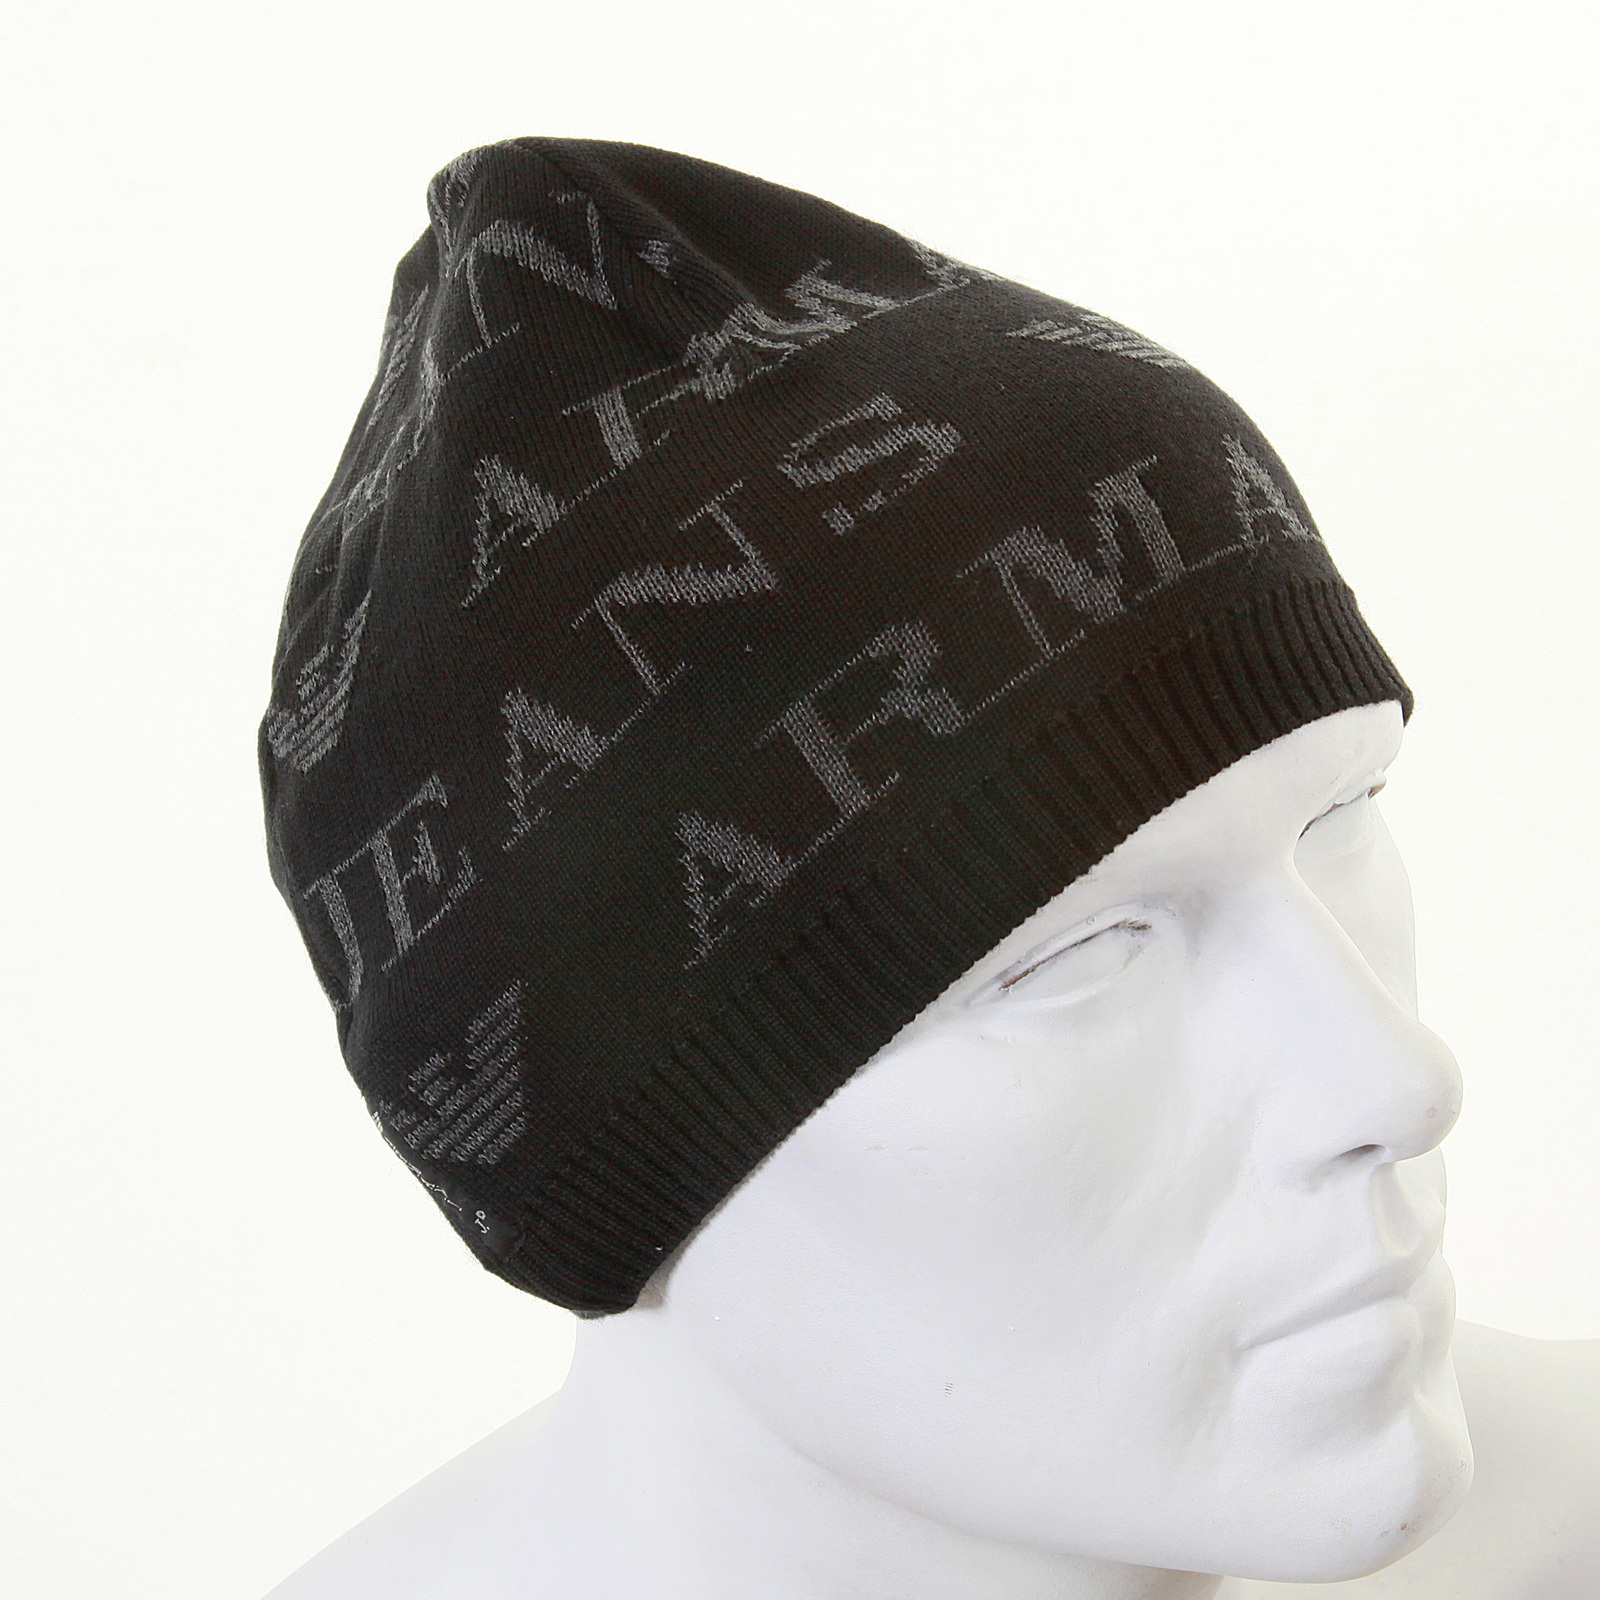 Armani Jeans black monogram knitted skull cap beanie S6417 S1 AJM1339 at  Togged Clothing 03eb81e6c3d